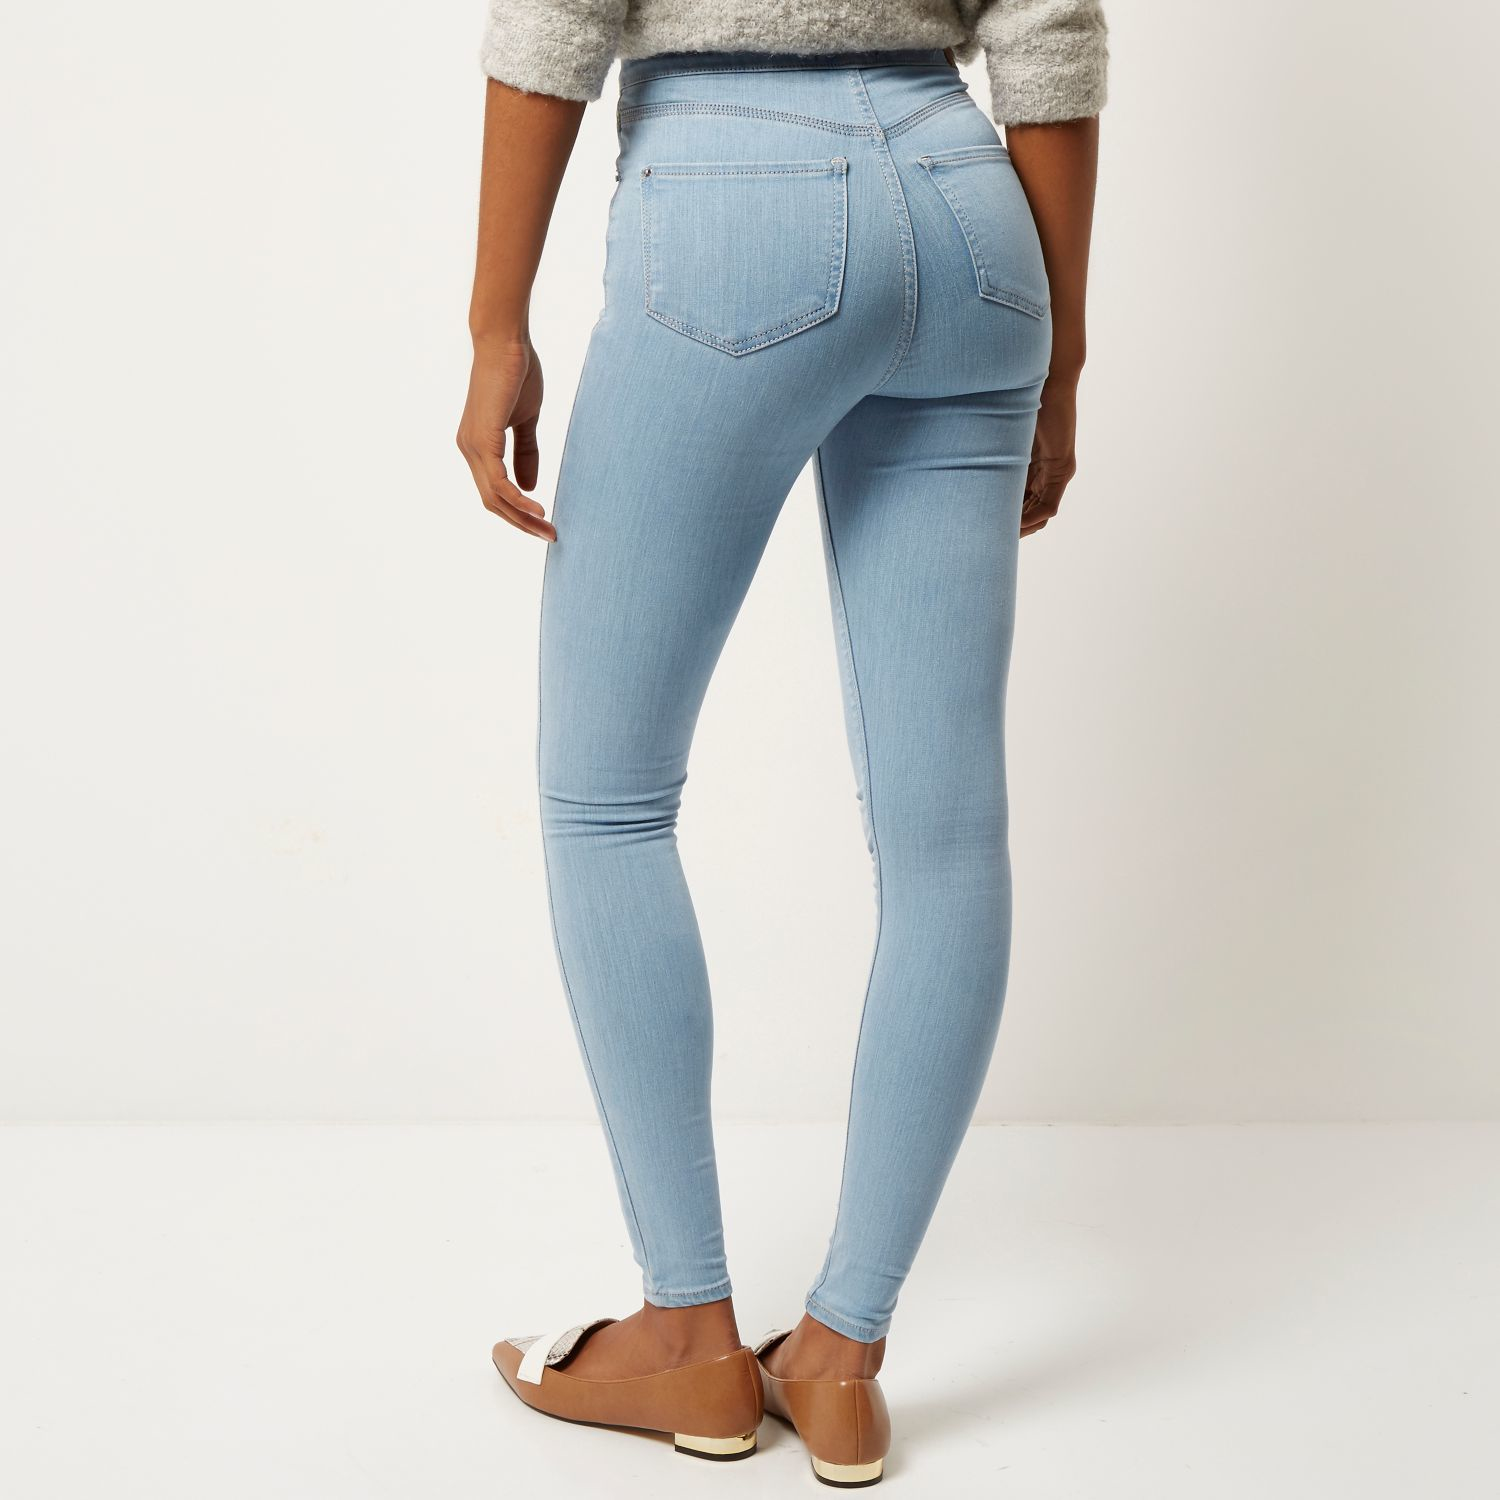 Gallery. Women's Jeggings Women's Light Wash Jeans - River Island Light Wash High Waisted Molly Jeggings In Blue Lyst